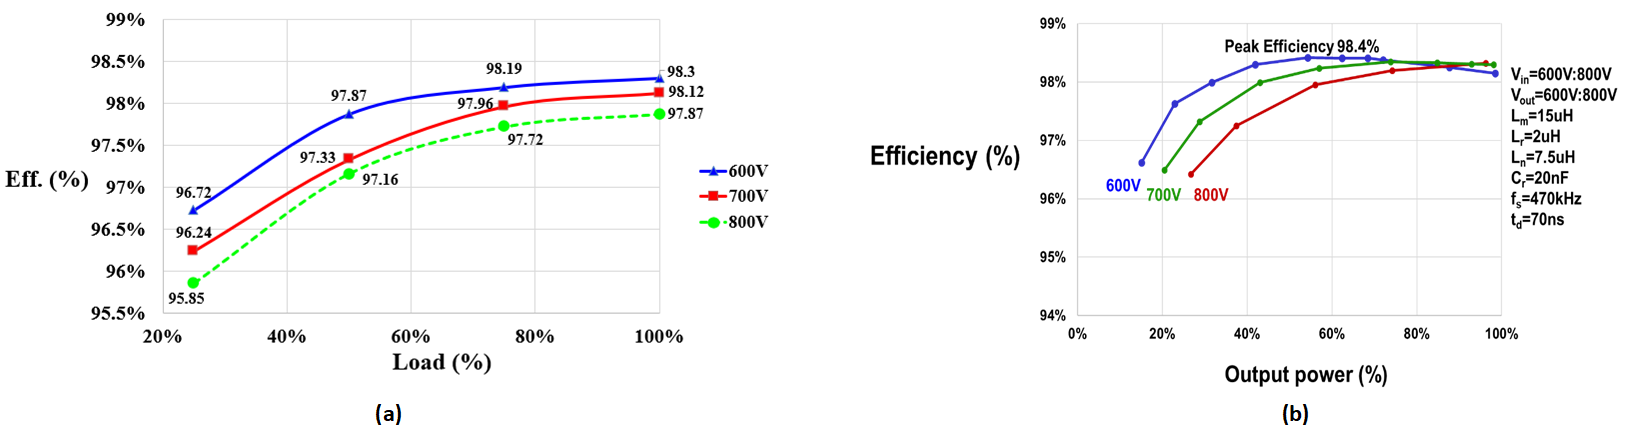 Overall Efficency